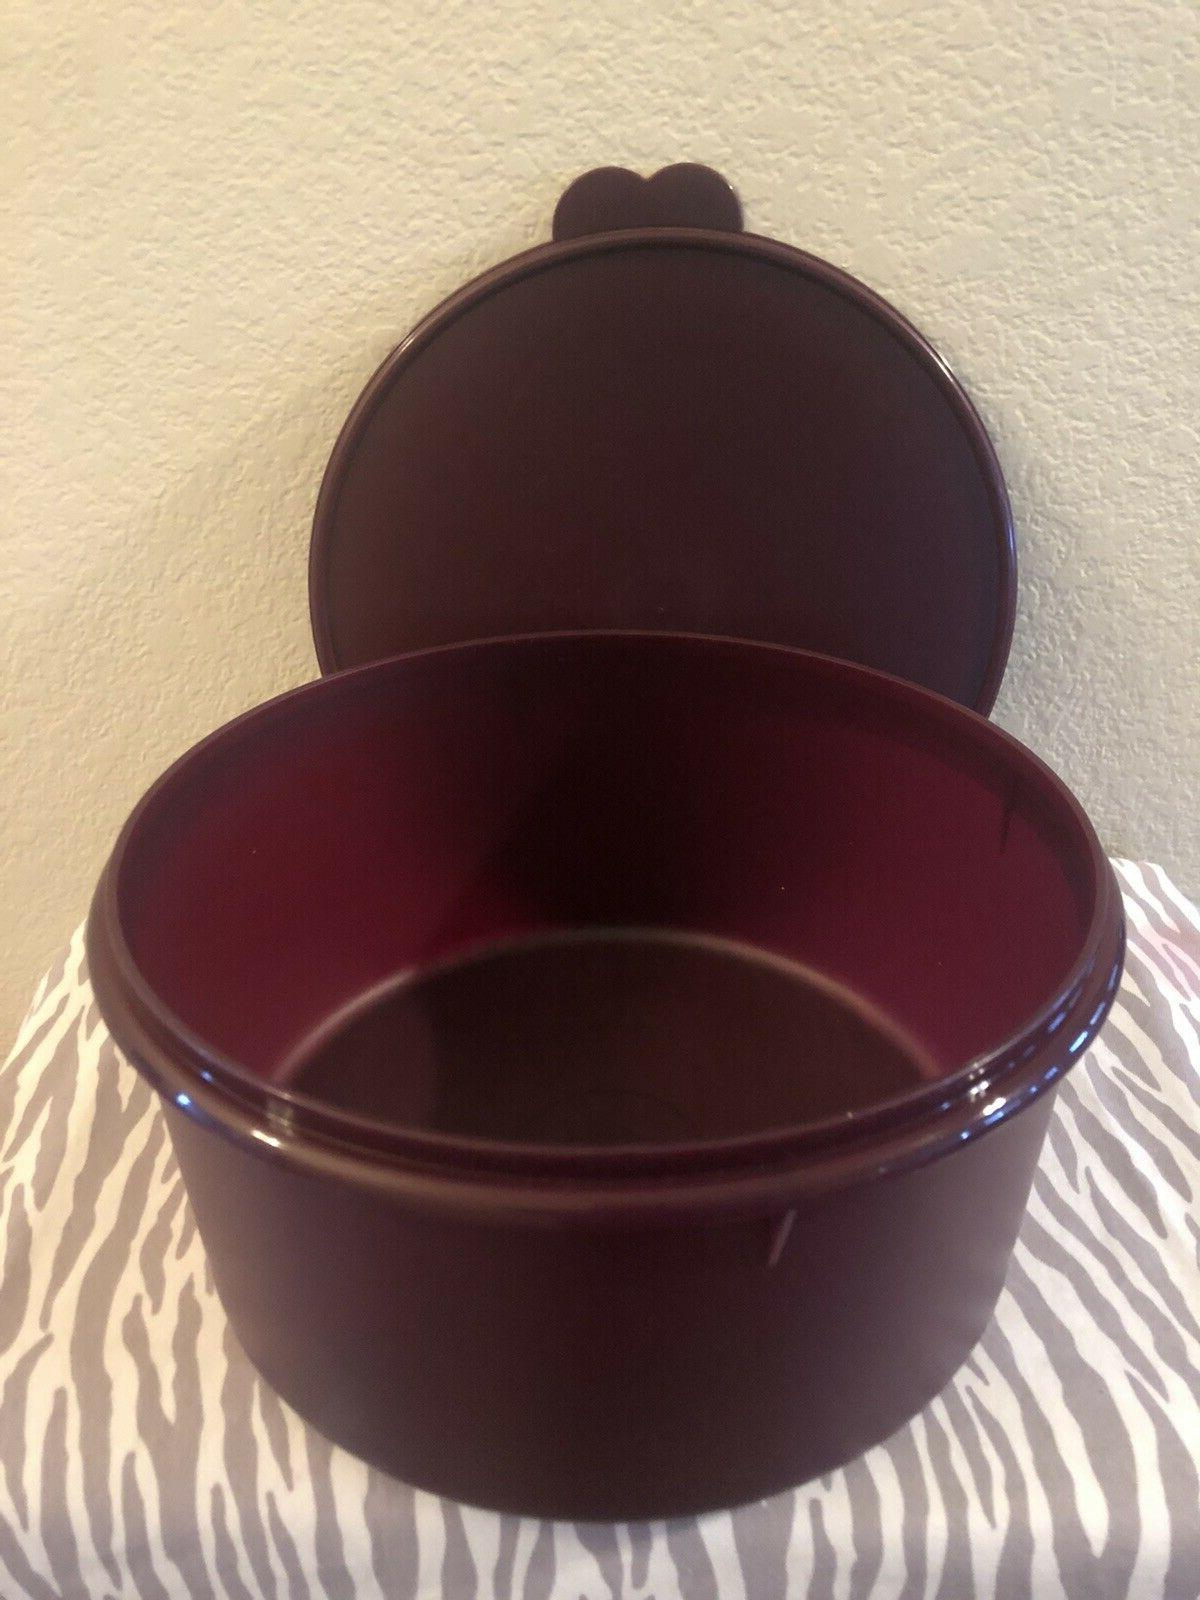 Tupperware Vintage Cake Carrier 42 Cups New